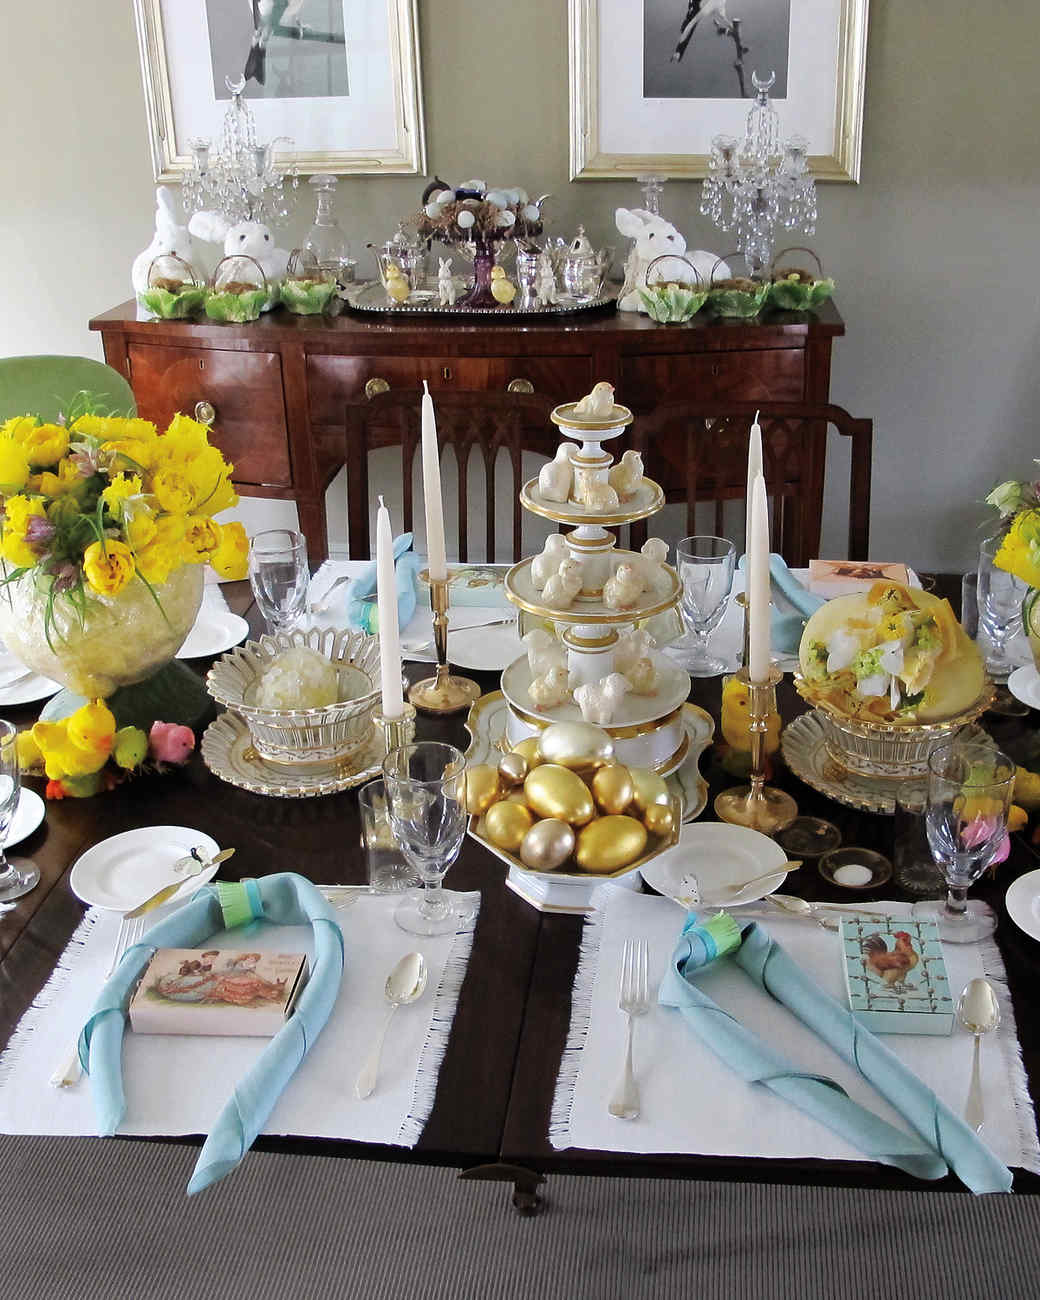 Spring Menagerie & Easter Table Crafts and Favors | Martha Stewart